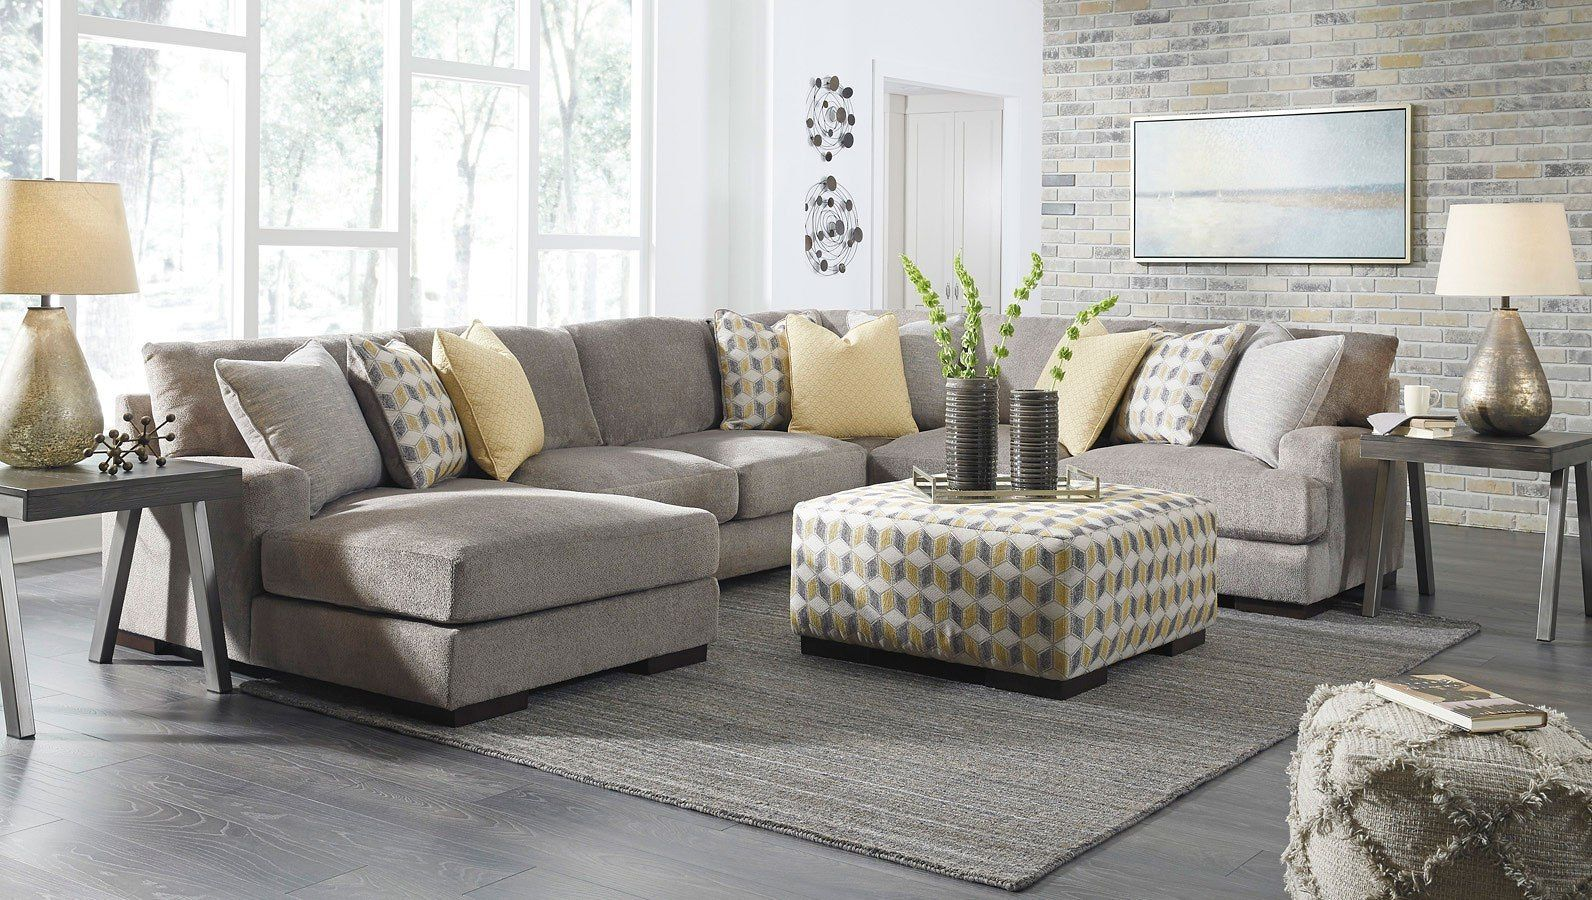 Fallsworth Smoke Modular Sectional Set | Quality living ...